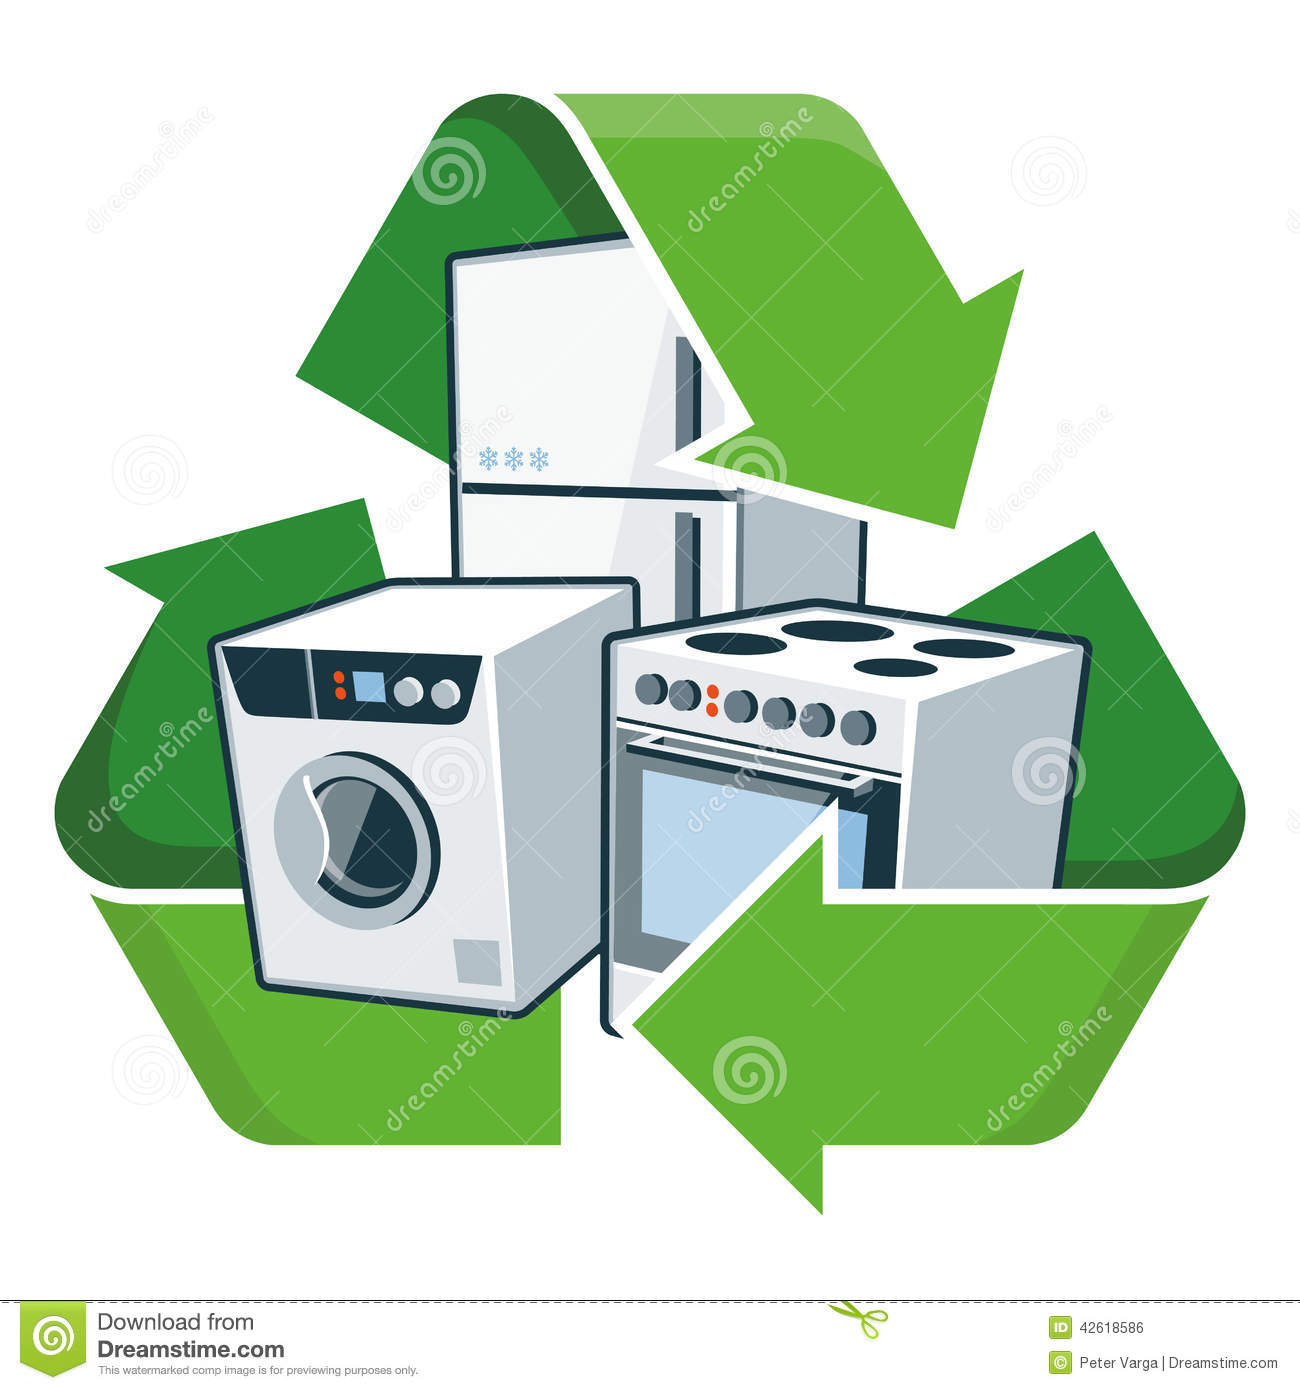 Recycle Large Electronic Appliances Stock Vector Illustration Of Electronics Scrap Recycling Pictures